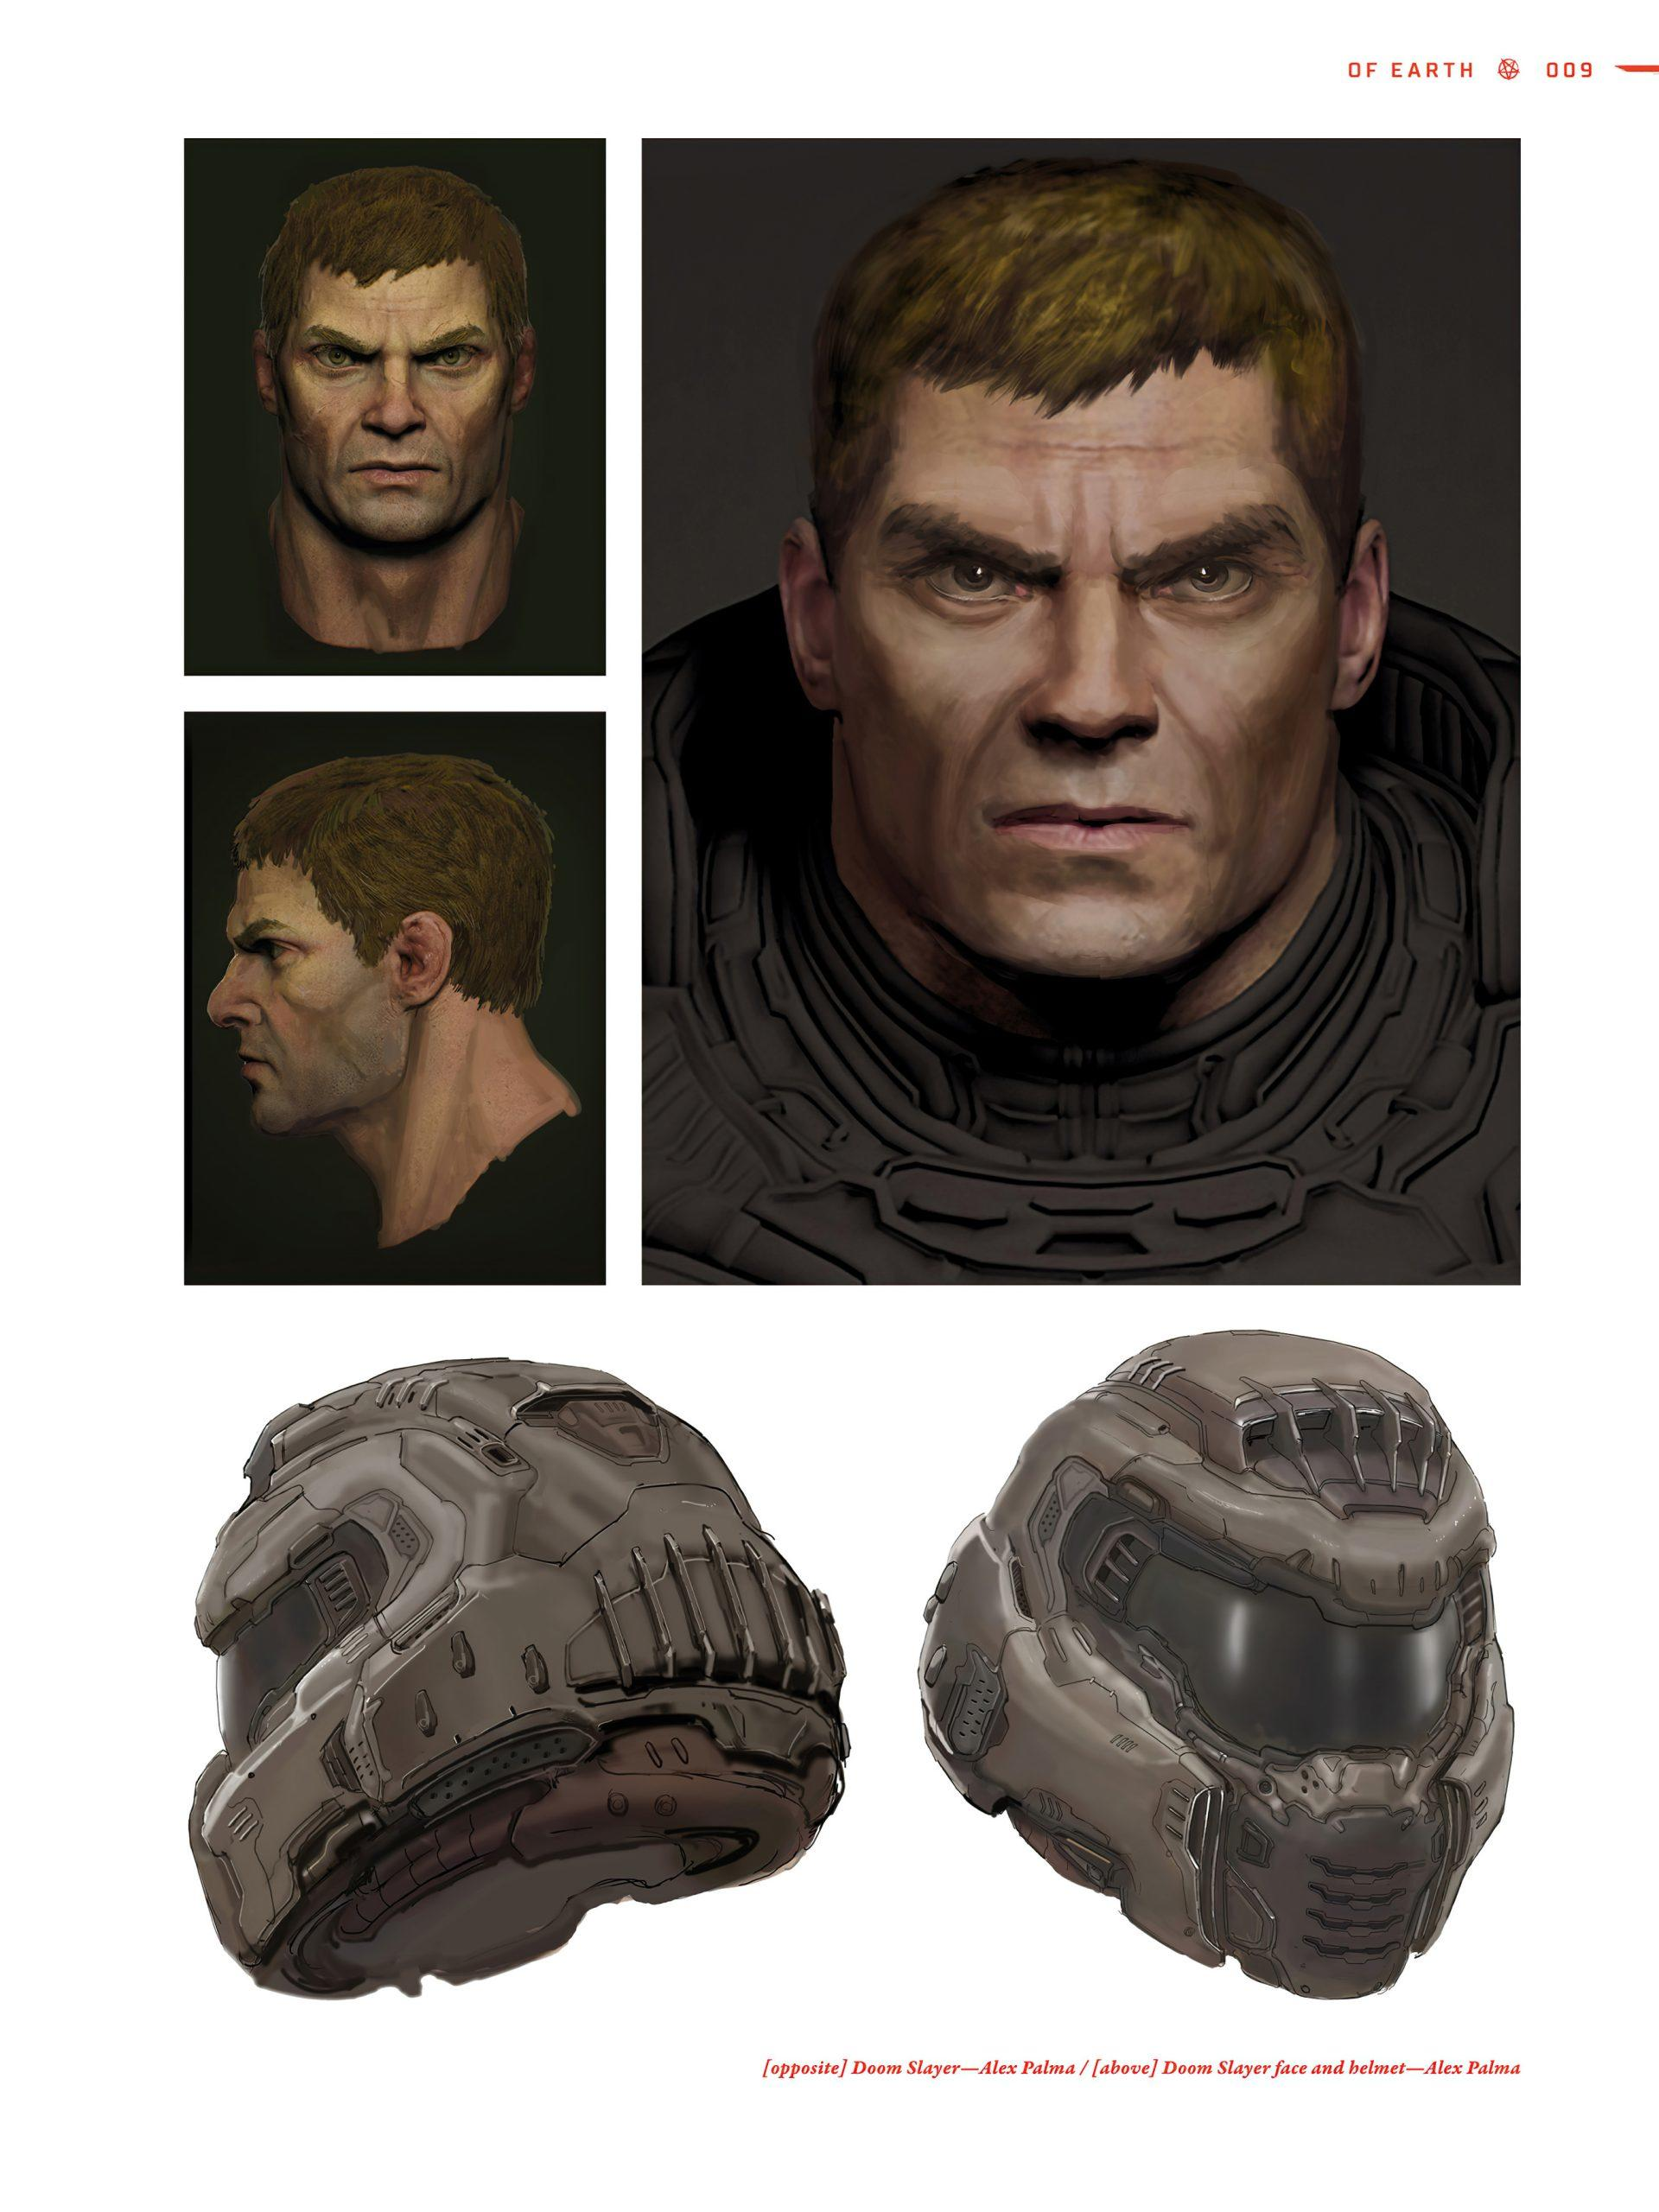 The Doom Slayer Without The Helmet From The Art Of Doom Eternal